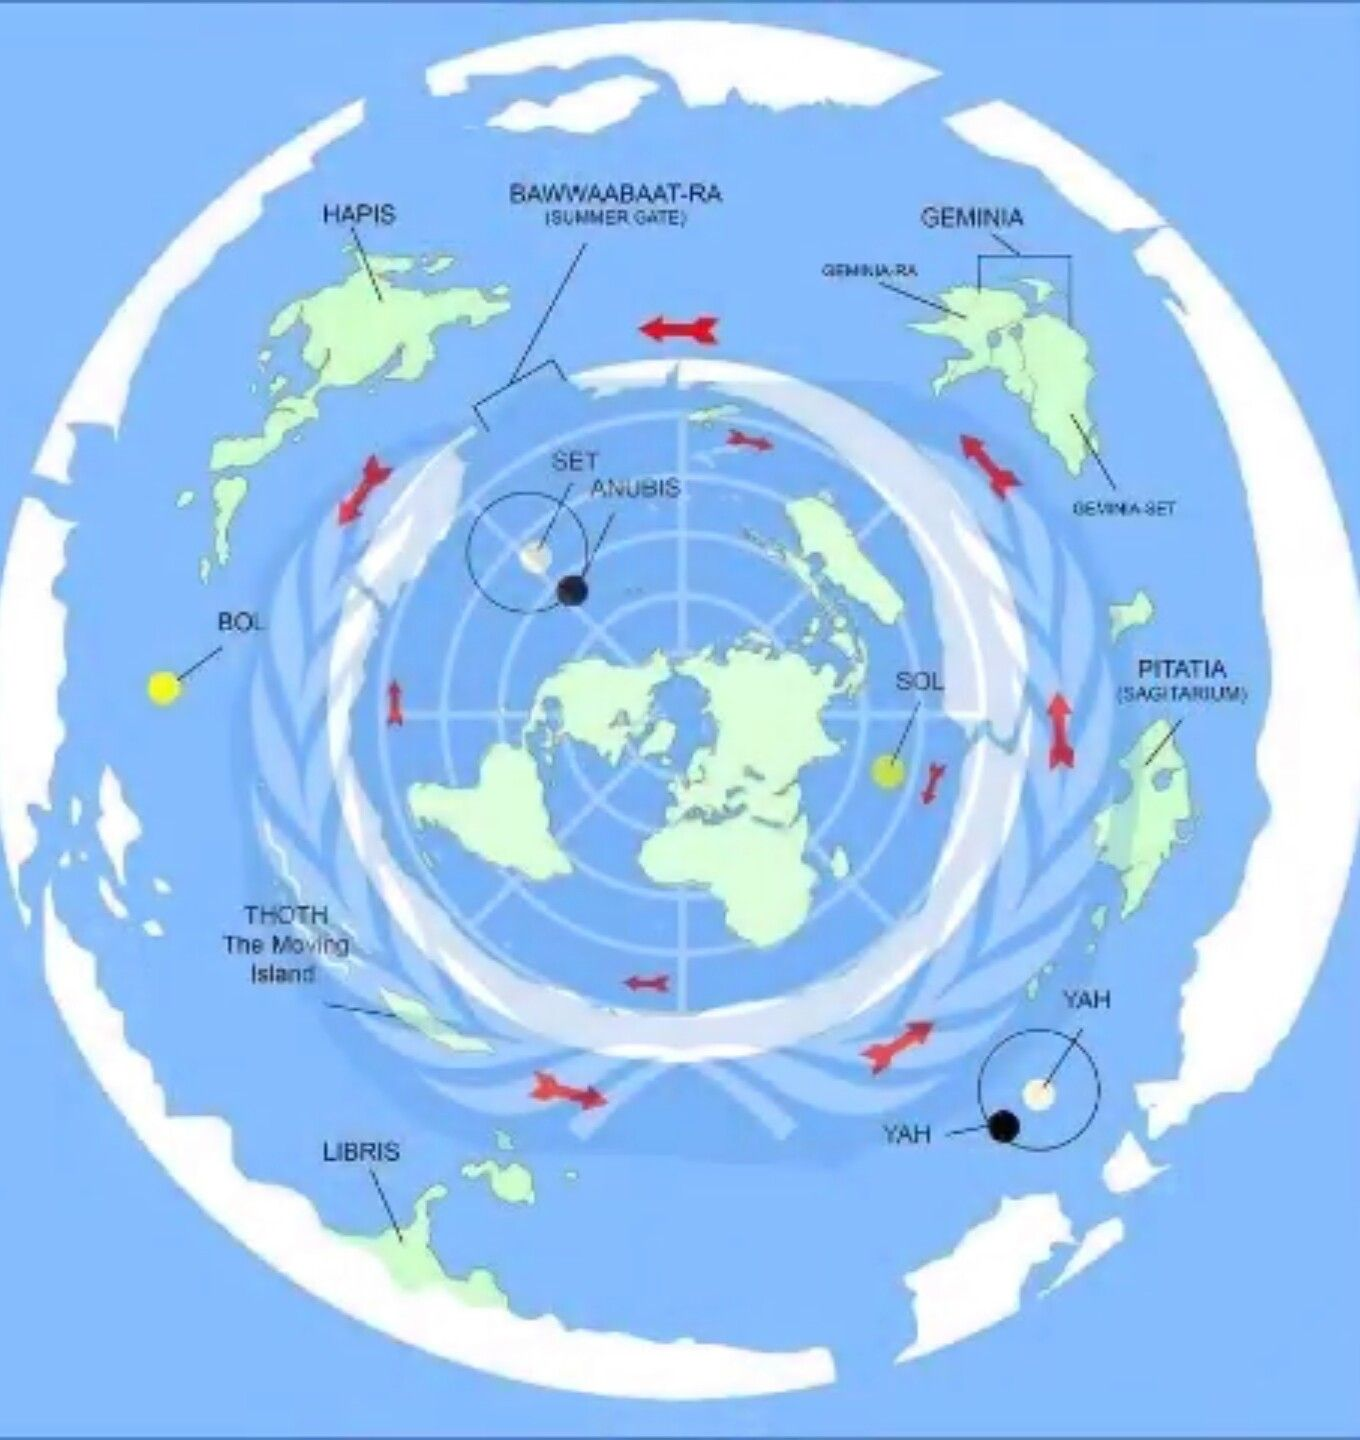 United Nations symbol has always had the flat earth truth in the